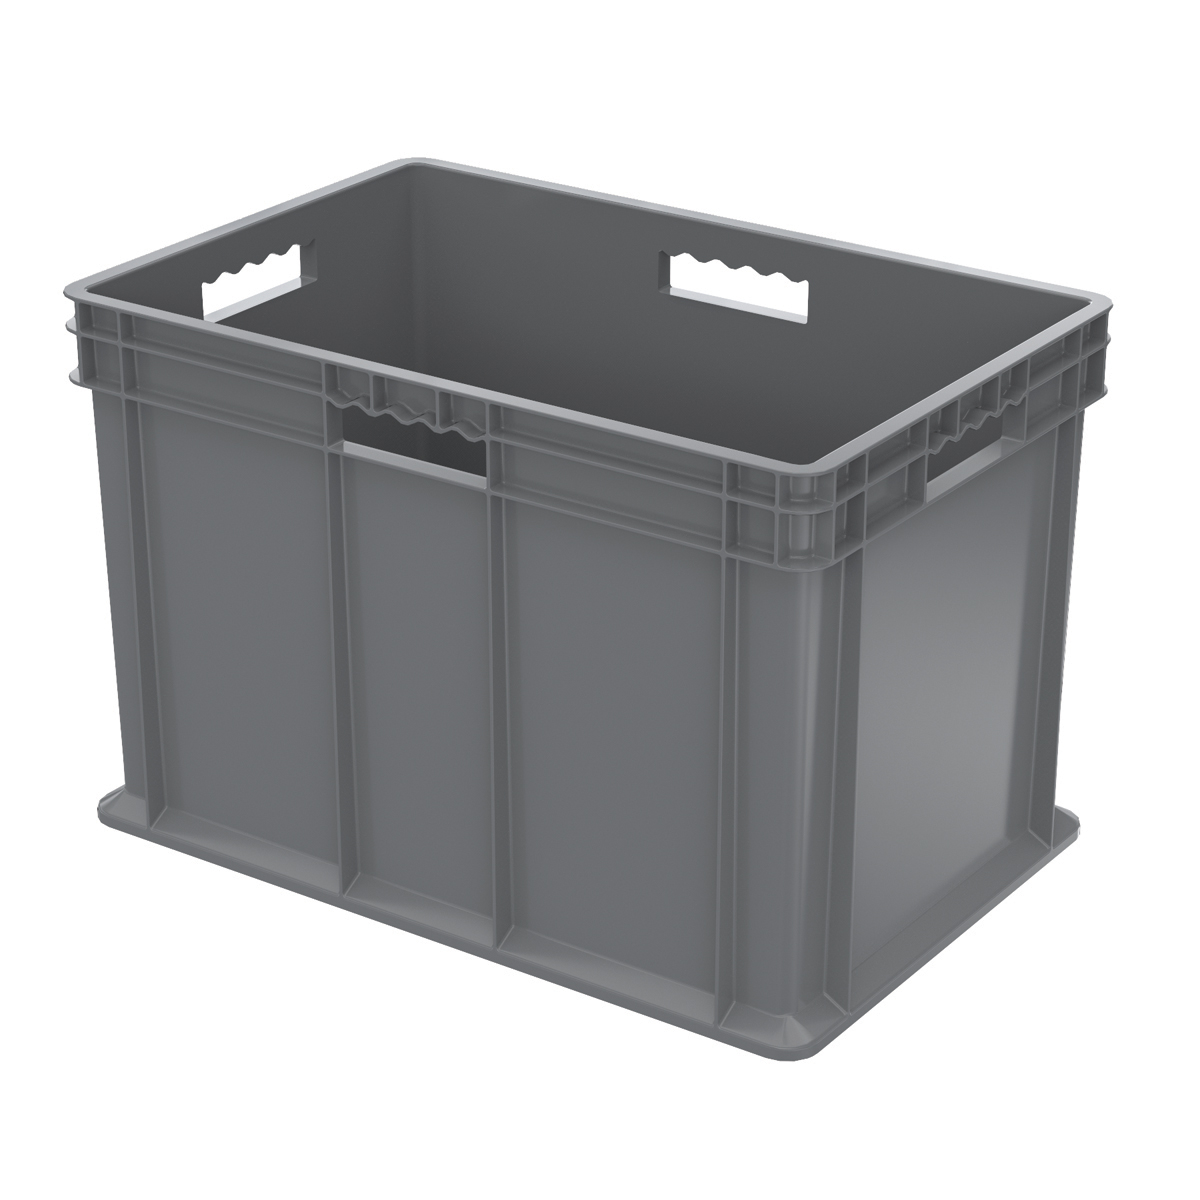 Straight Wall Container, Solid 23-3/4 x 15-3/4 x 16-1/8, Gray (37686GREY).  This item sold in carton quantities of 2.